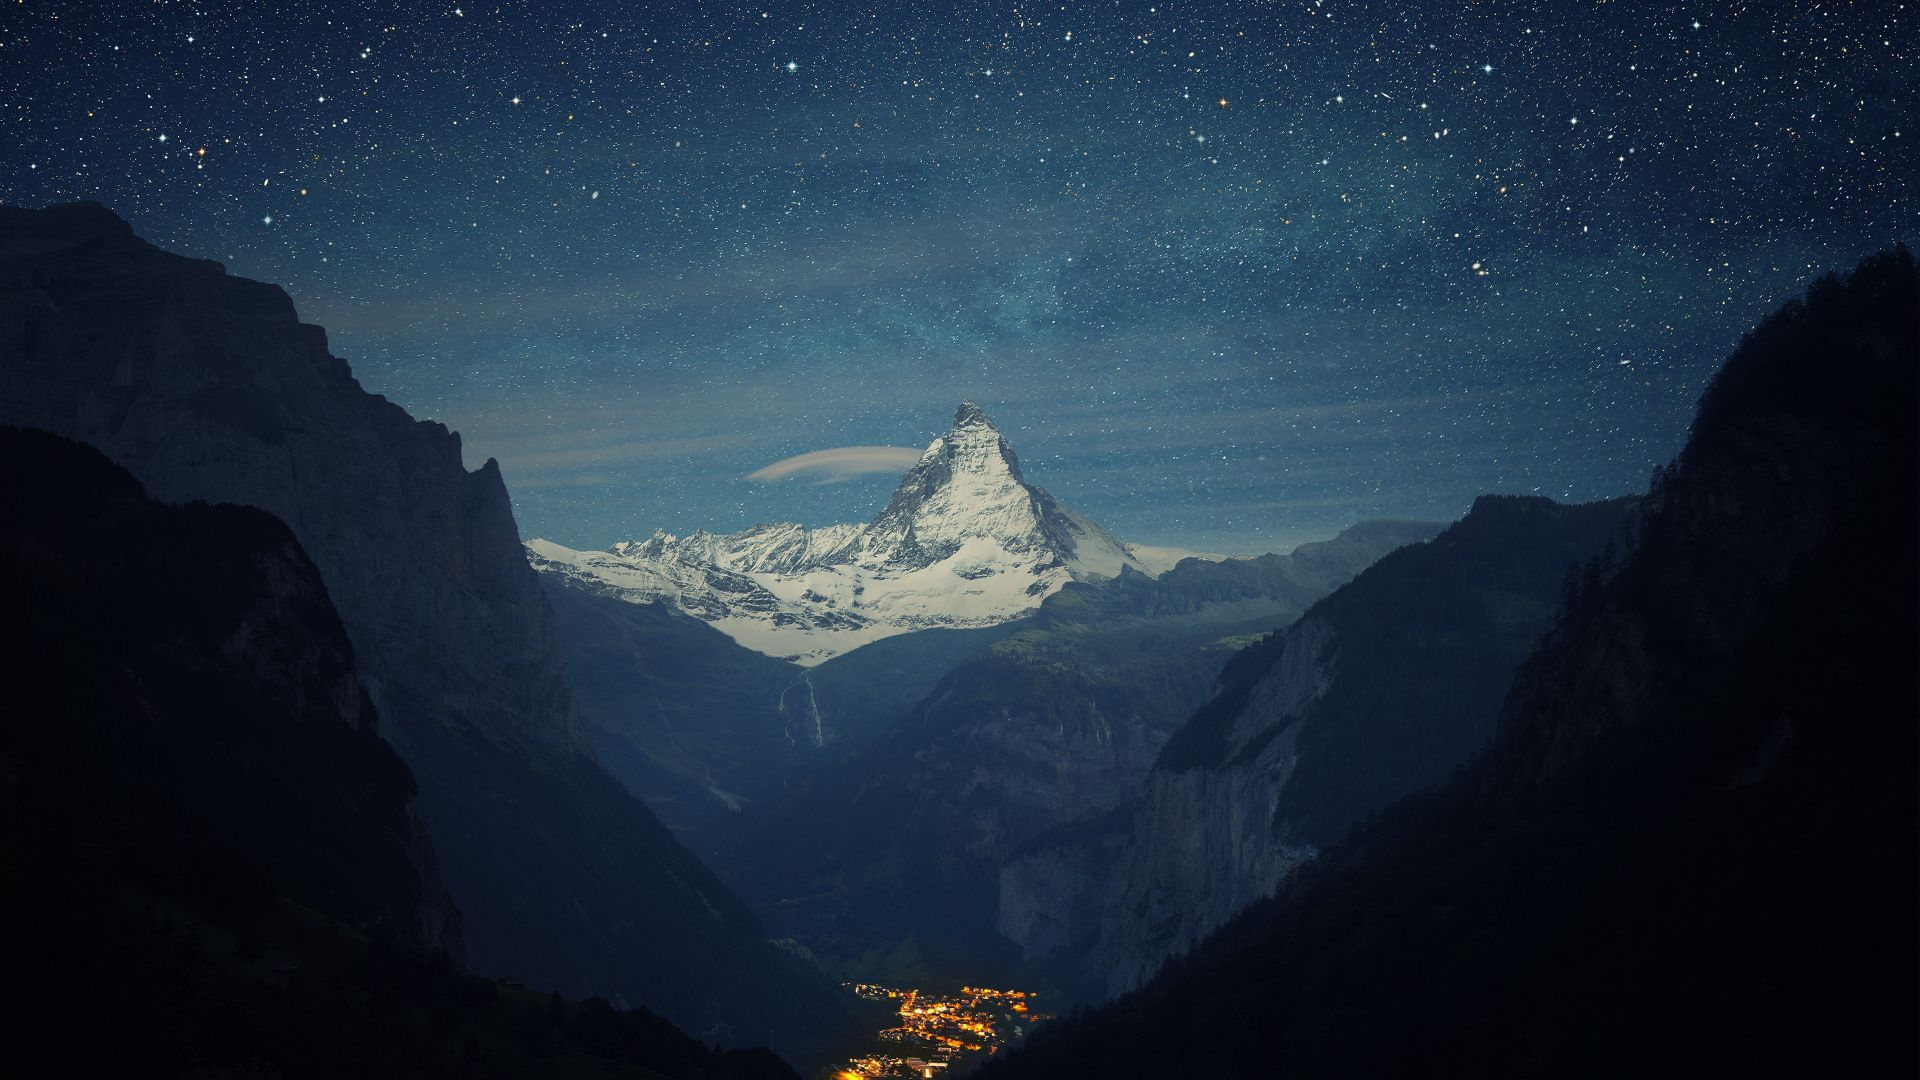 Wallpaper Switzerland 4k 5k Wallpaper Alps Mountains Stars Night Os 5713